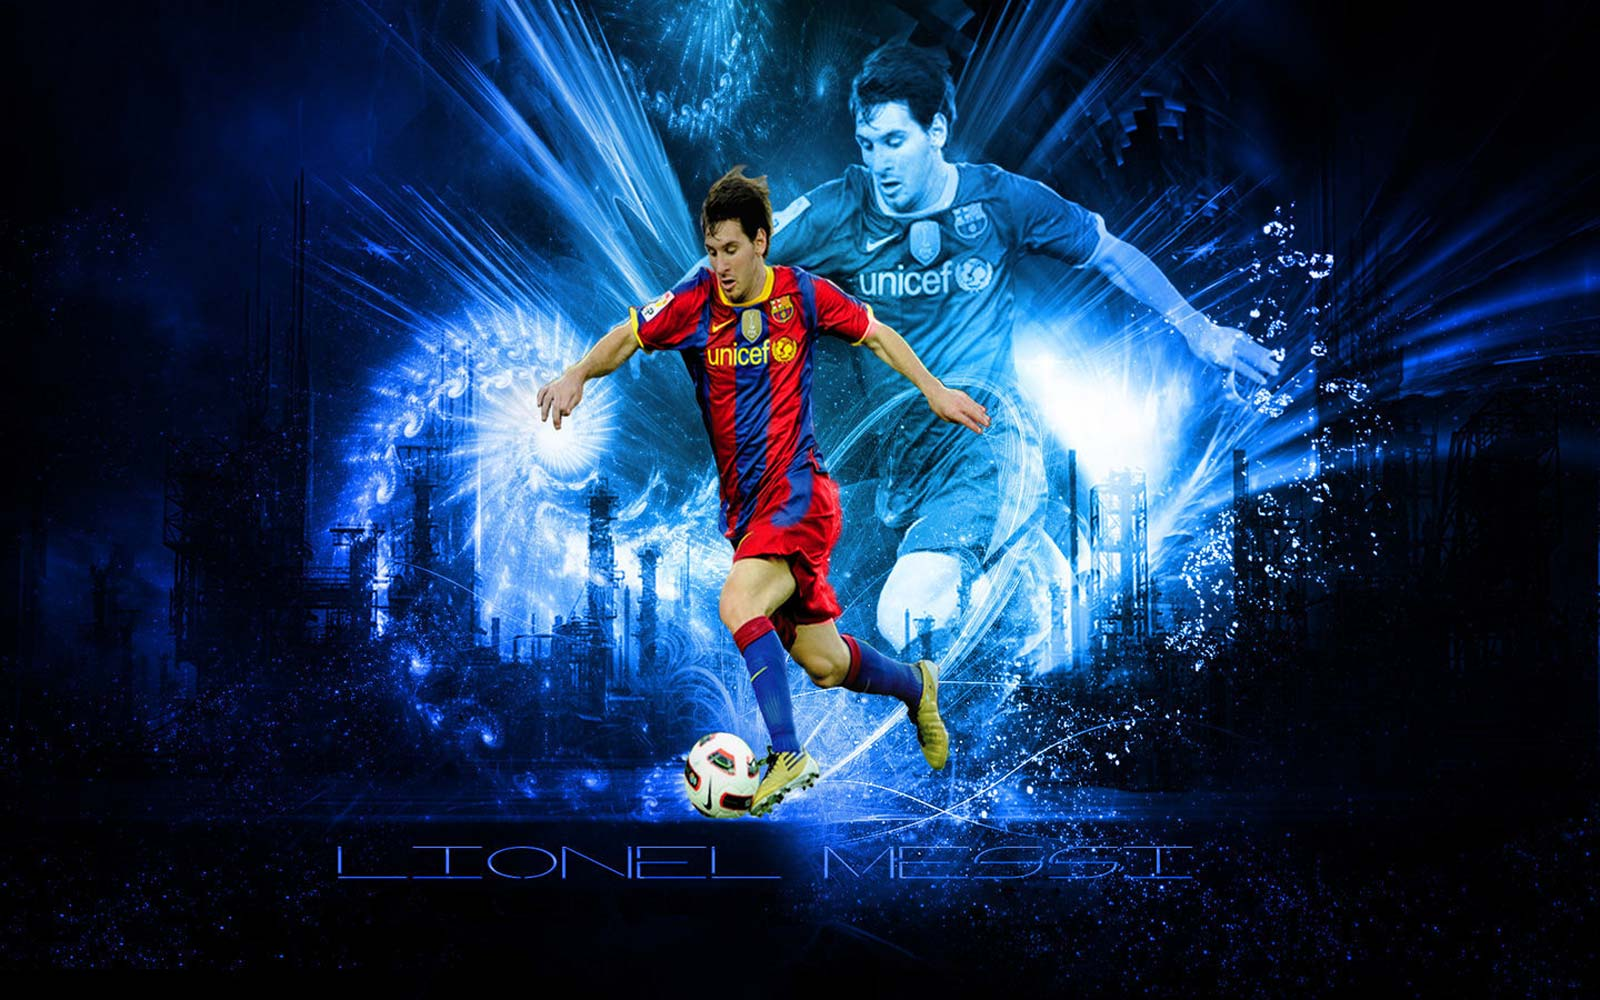 All Wallpapers Lionel Messi hd New Nice Wallpapers 2013 1600x1000